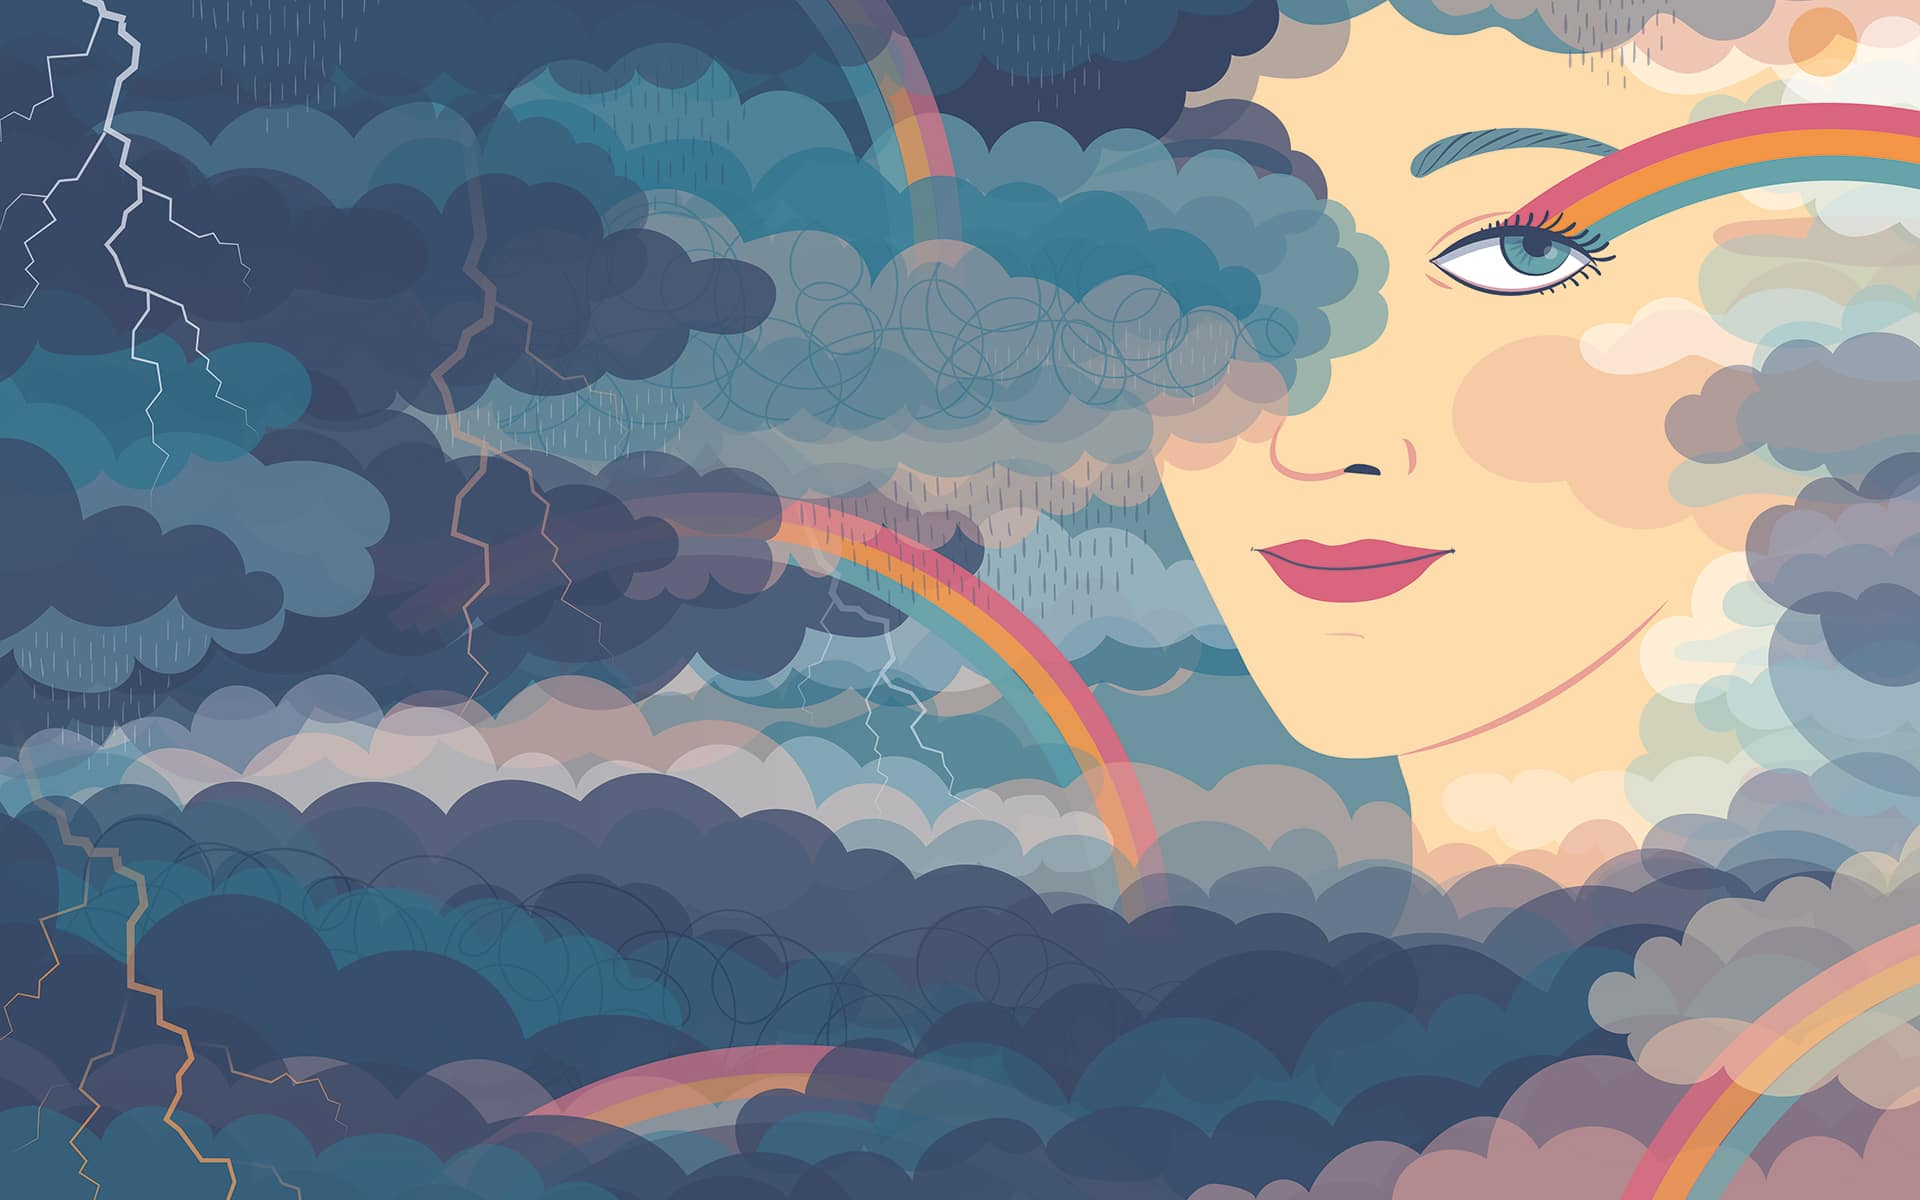 Woman's face in clouds